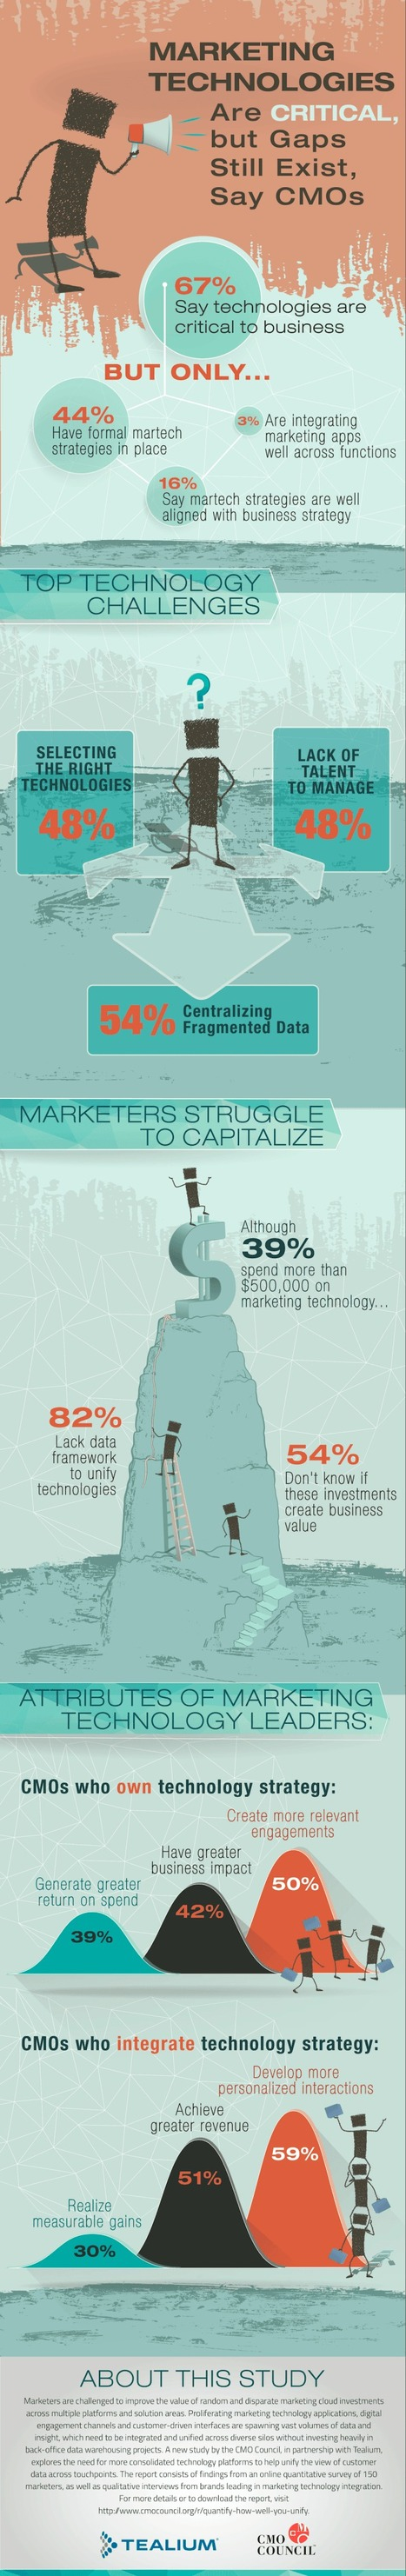 Putting Your CMO in Charge of Marketing Technology Pays Off! | Marketing Technology Blog | Social Media | Scoop.it